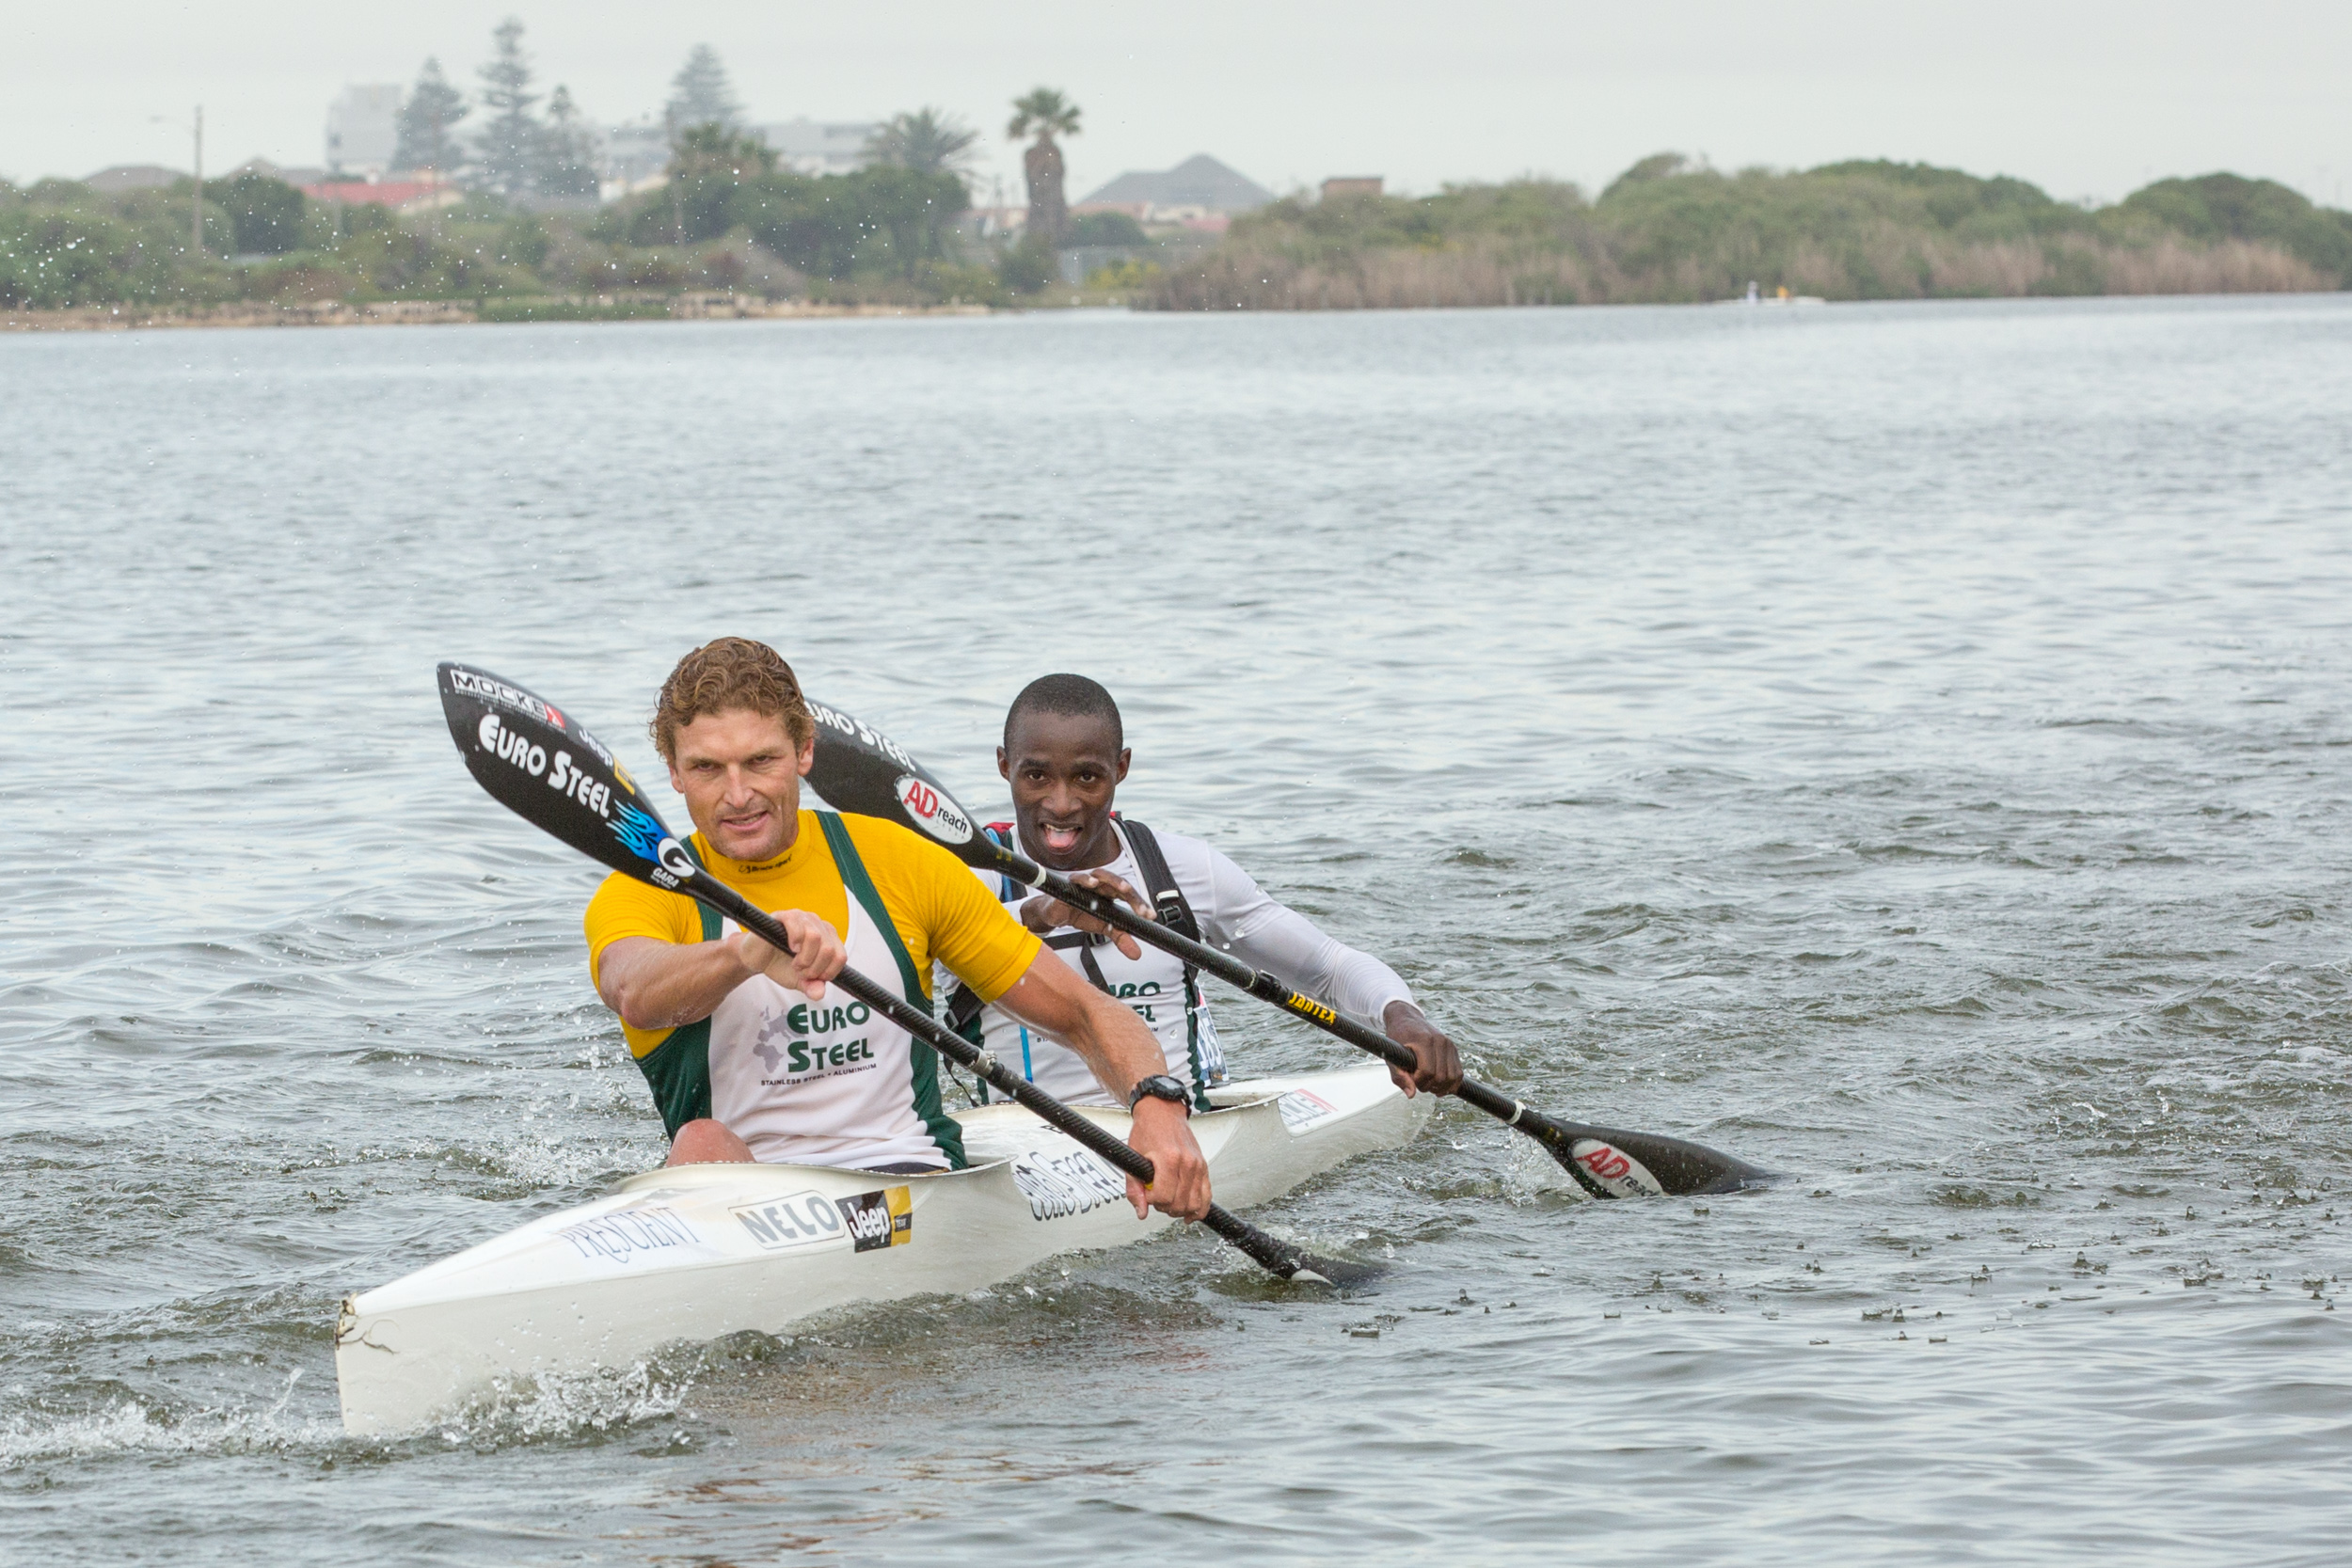 Hank McGregor and Siseko Ntondini during the 2016 K2 SA Canoe Marathon Championships in Zandvlei, Cape Town. Photographer: John Hishin / Gameplan Media